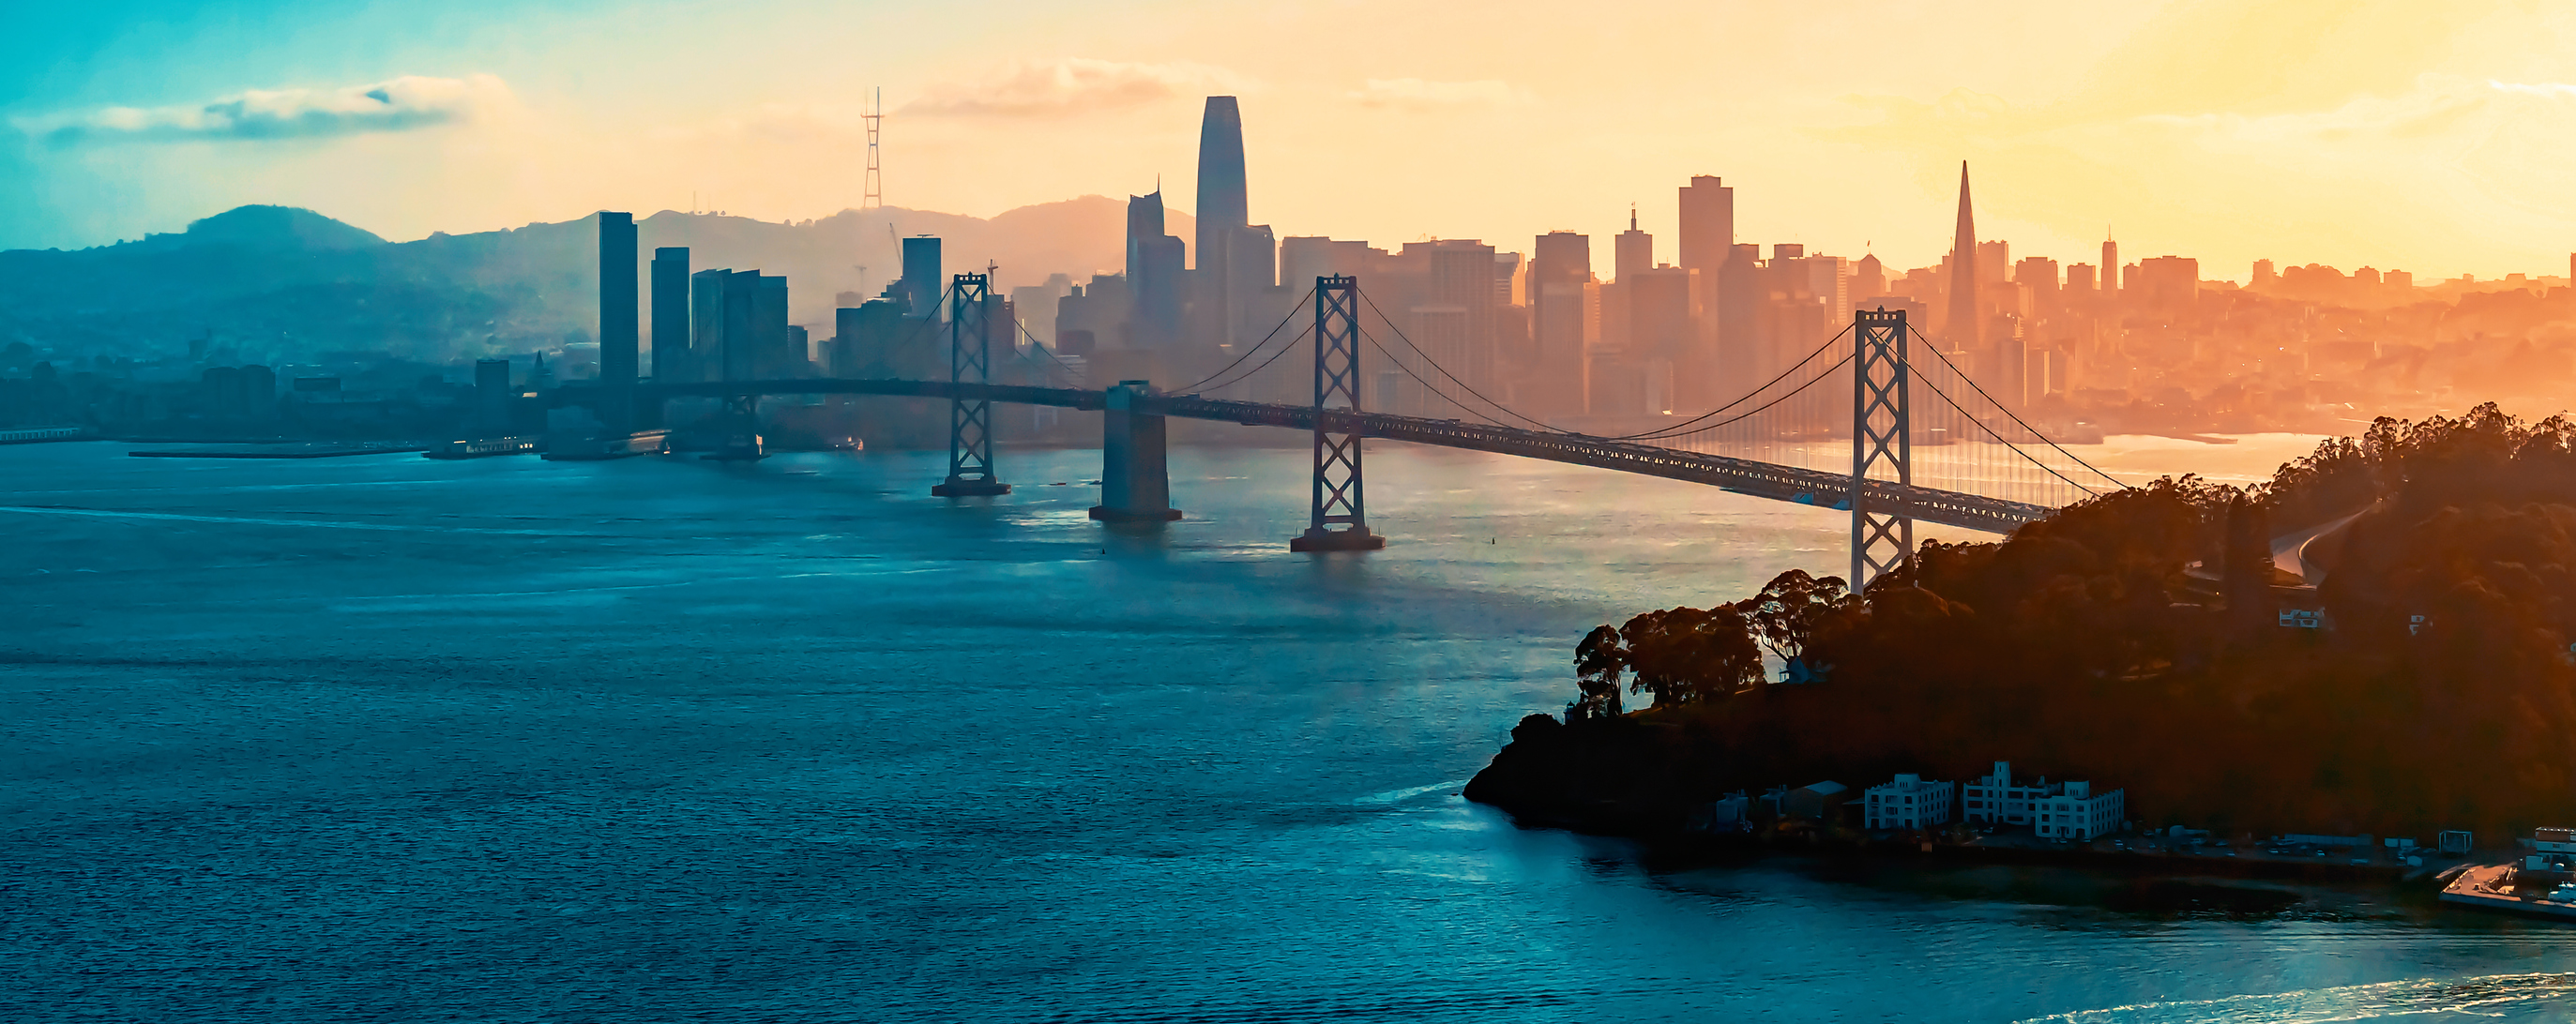 SF_HeaderImage-1